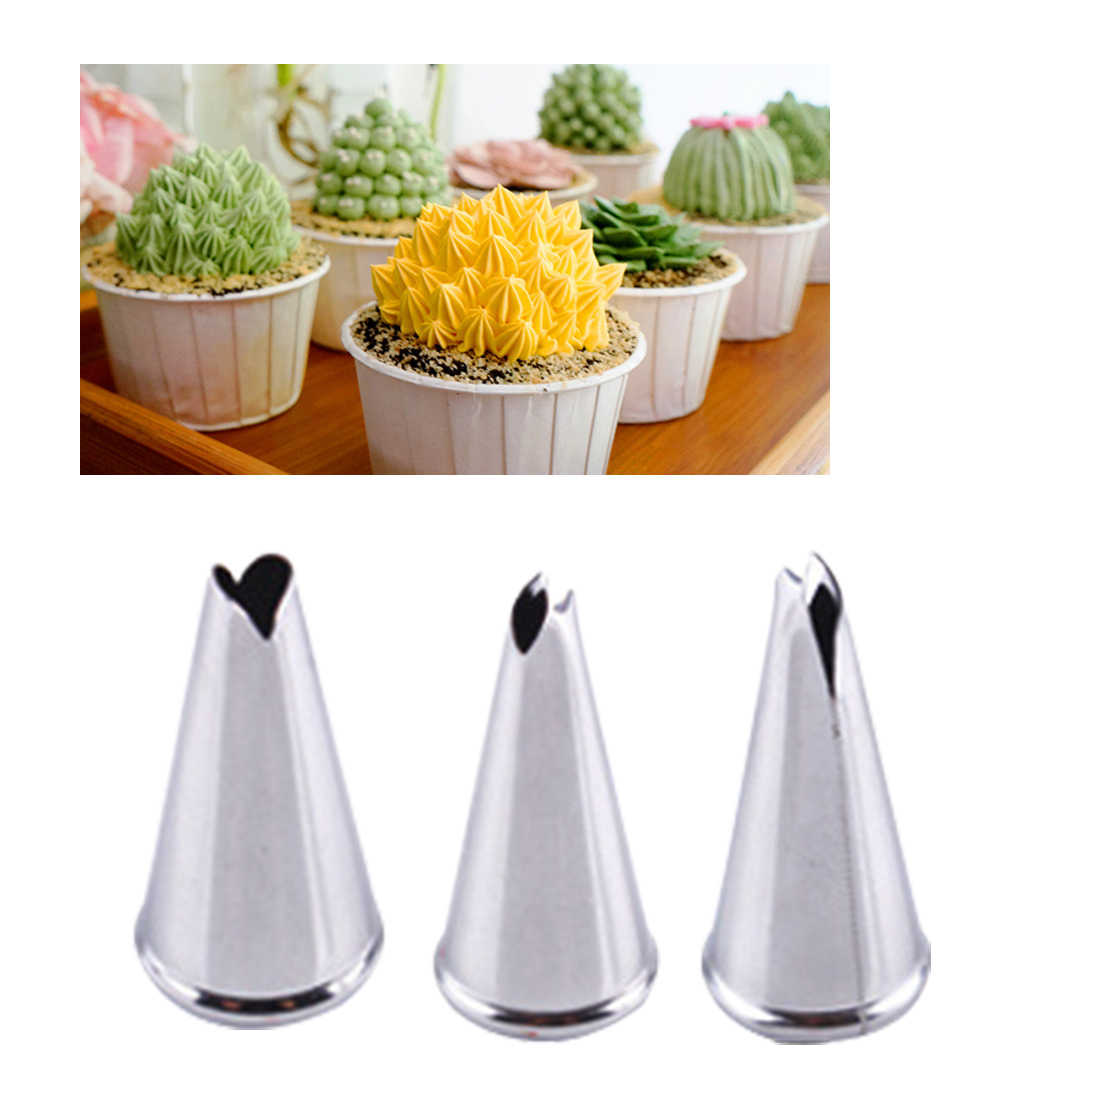 Promotions  1 PC Leaves Nozzle Stainless Steel Icing Piping Nozzle Pastry Tips Cake Decor Tool